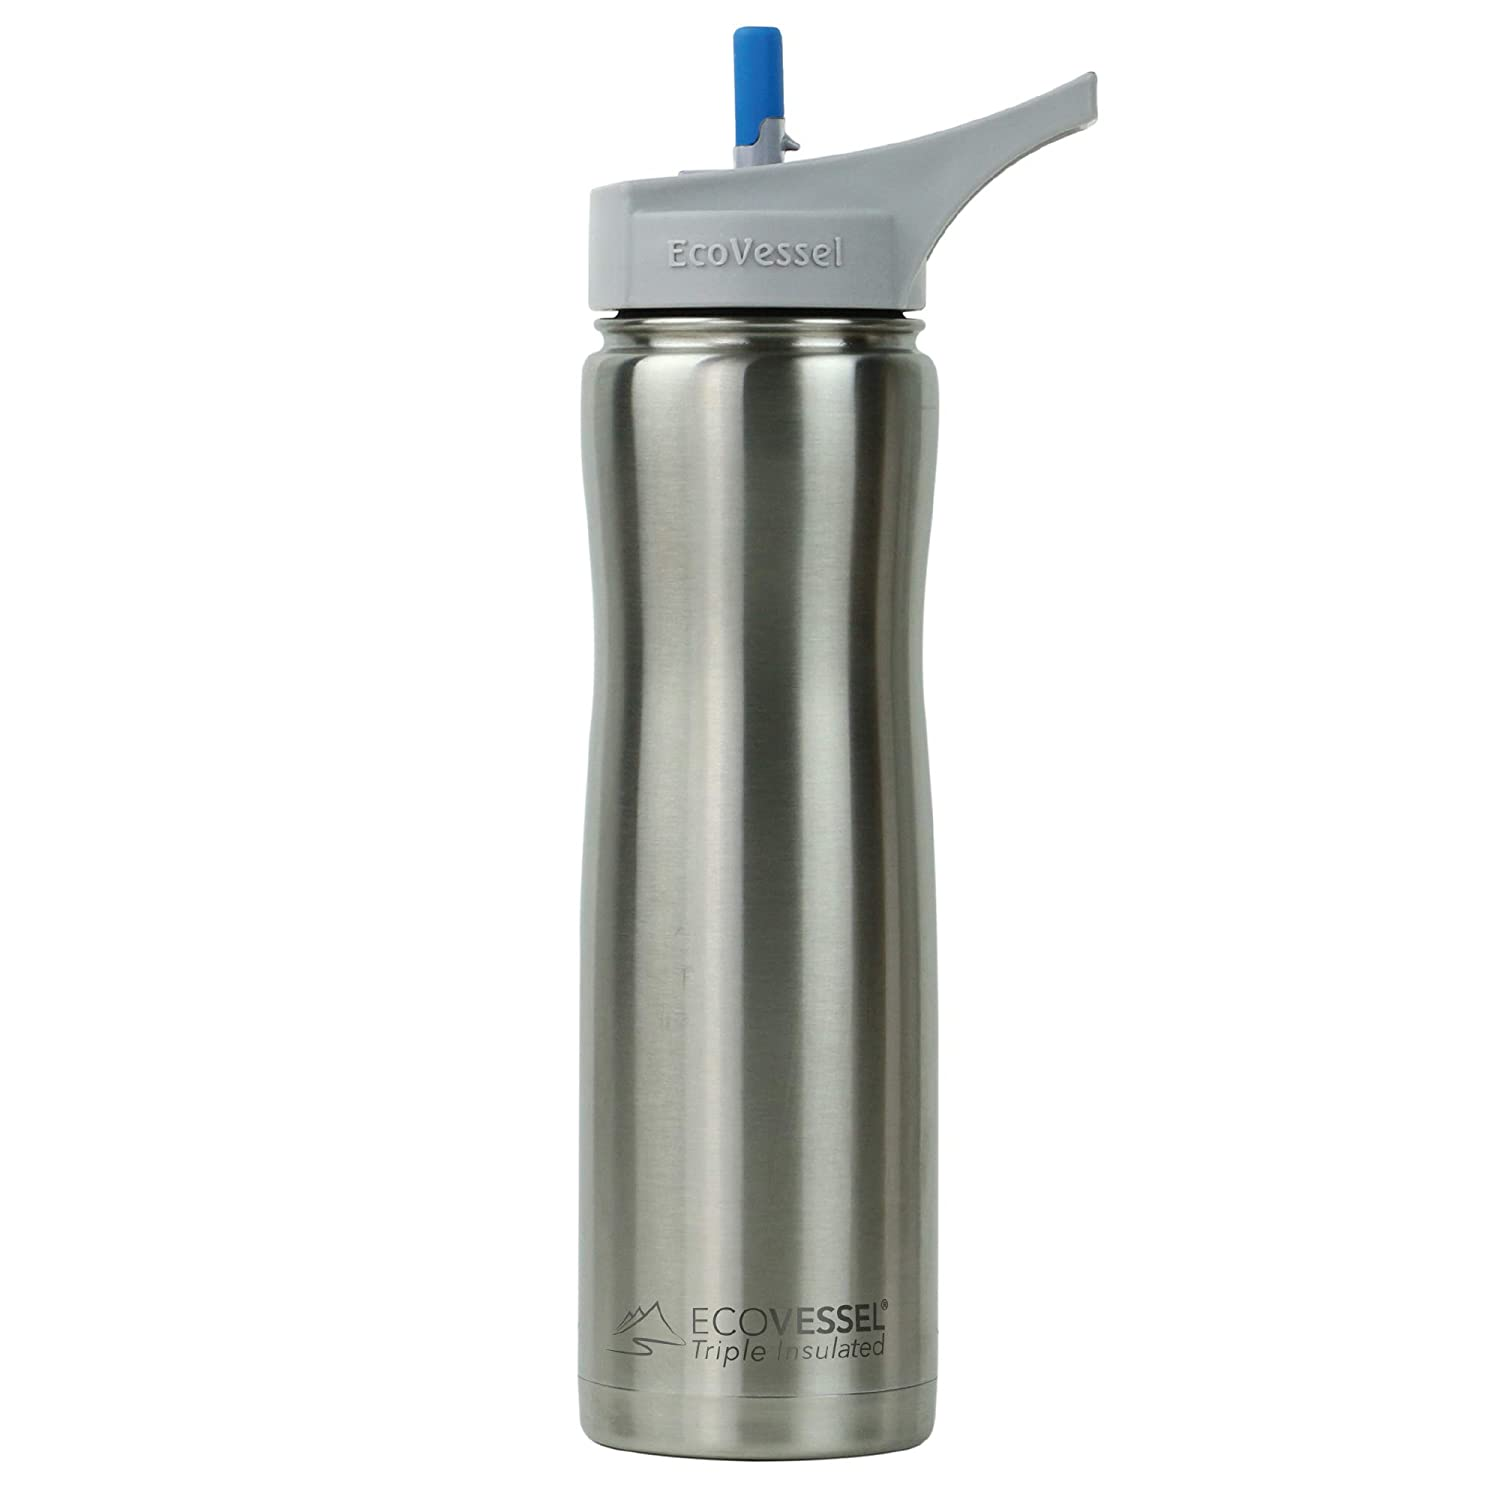 EcoVessel Summit TriMax Triple Insulated Stainless Steel Water Bottle with Flip Straw 24 Ounces